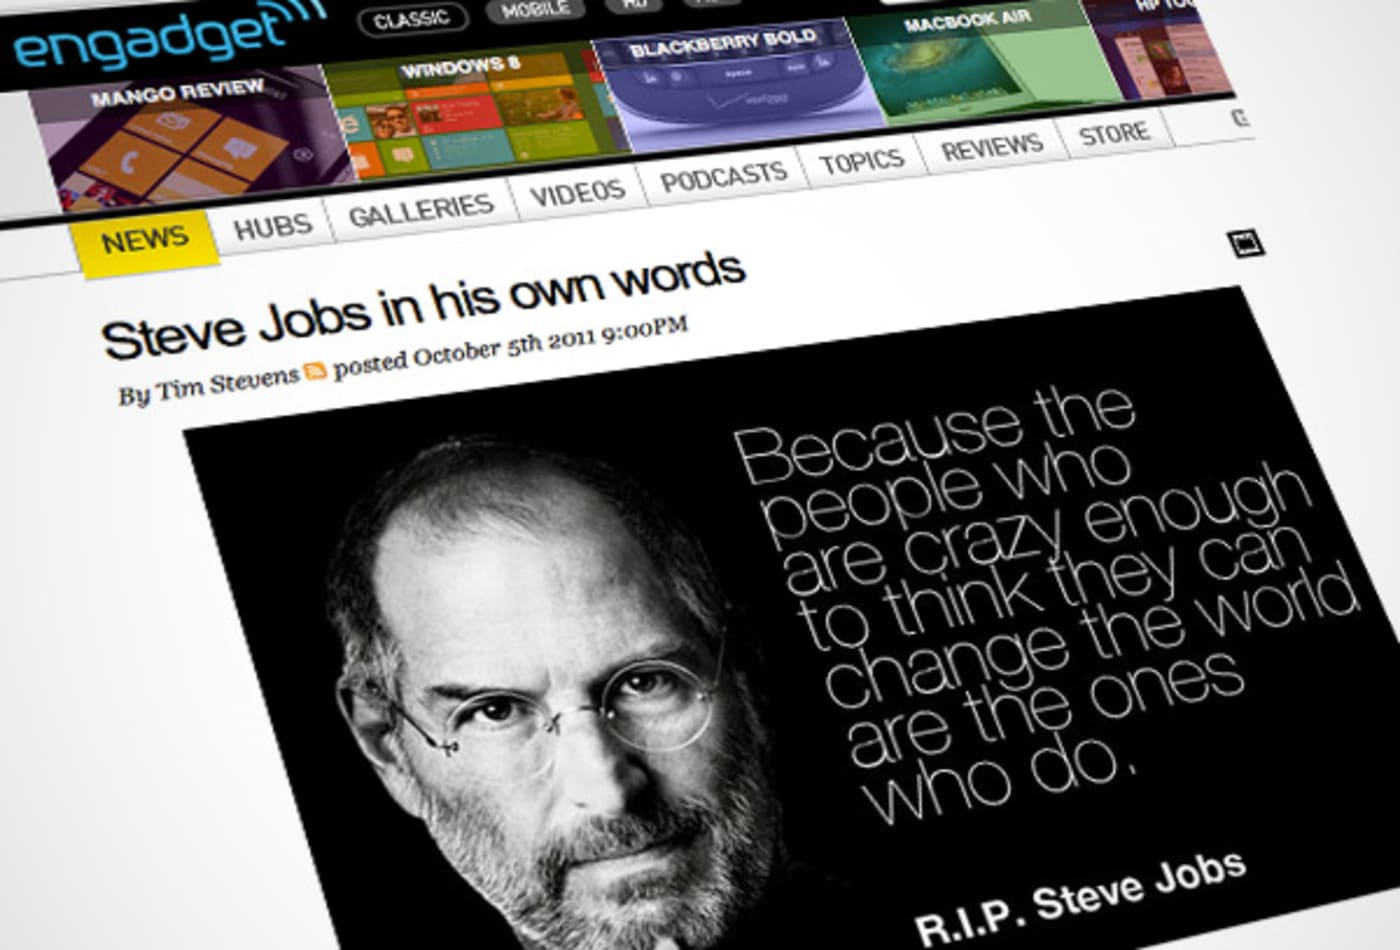 steve-jobs-passed-away-remembering-cnbc-7.jpg